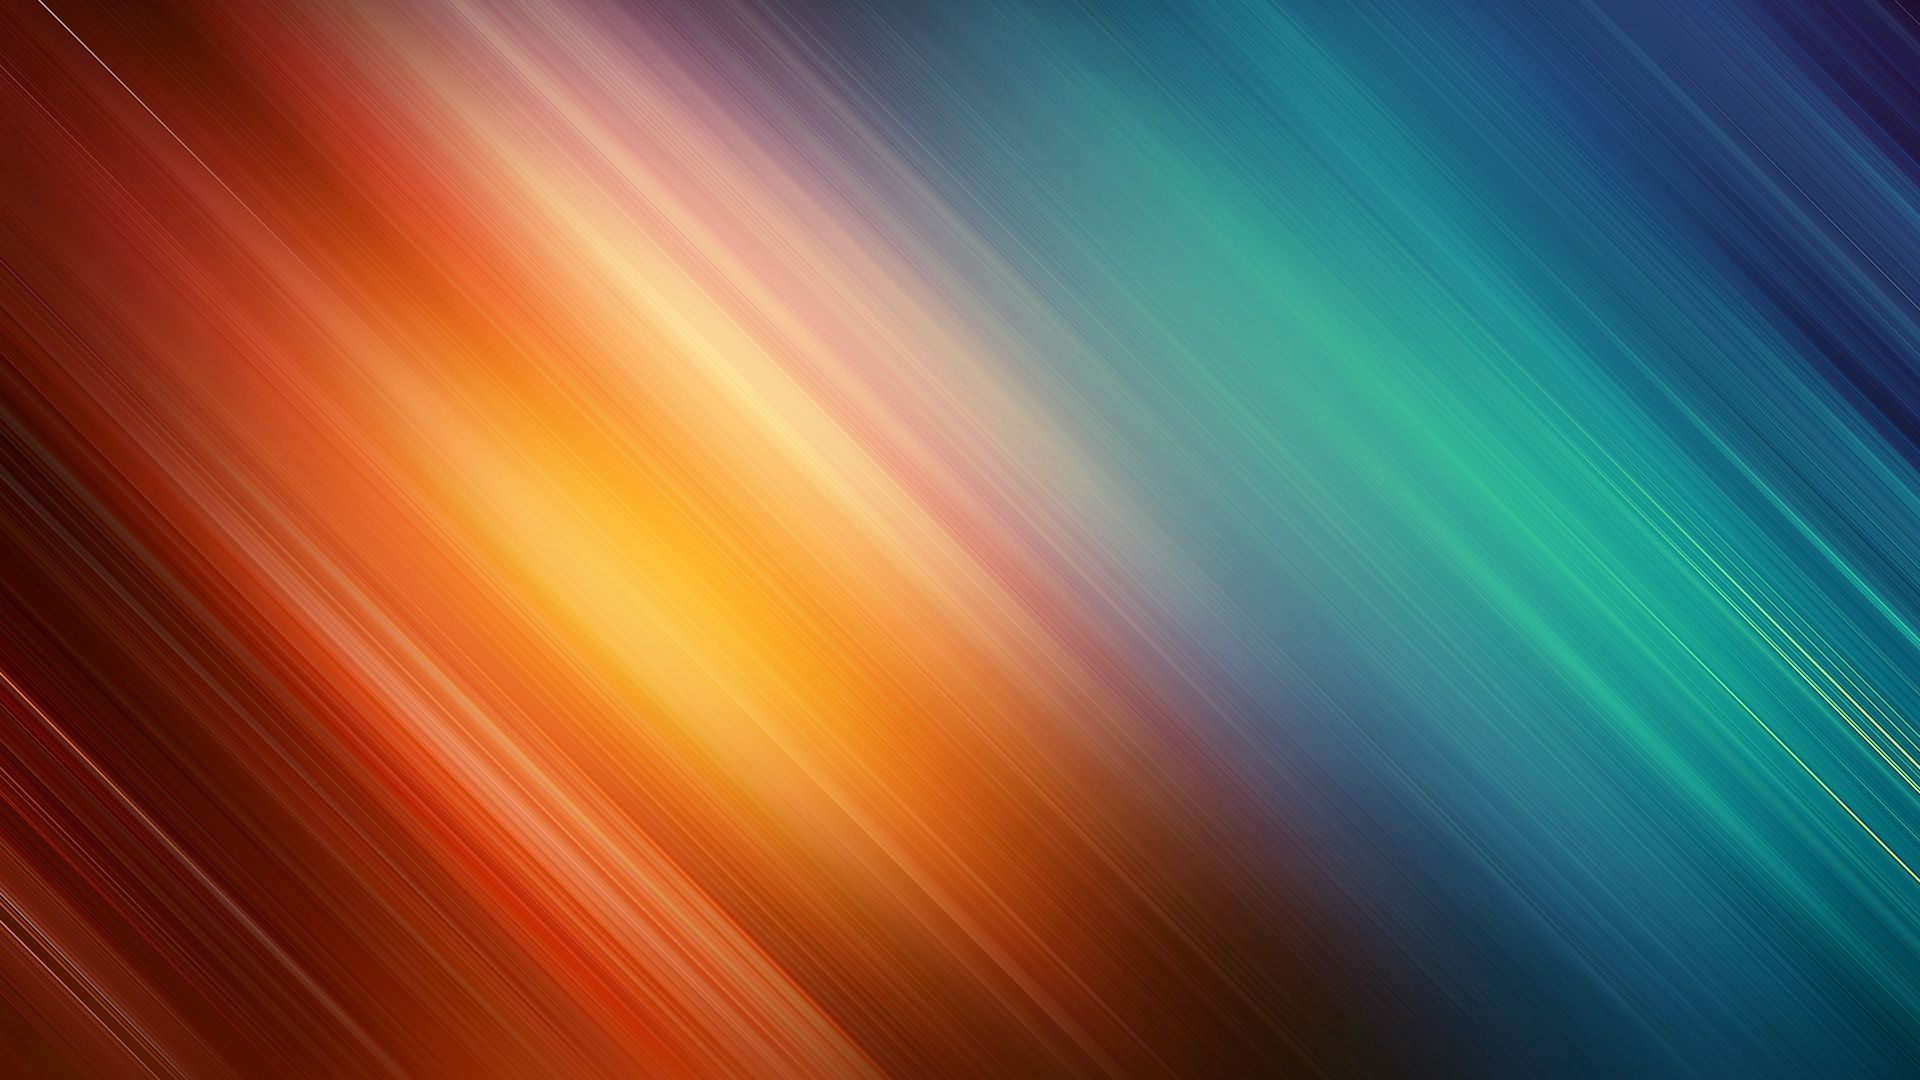 Vibrant laptop background wallpaper